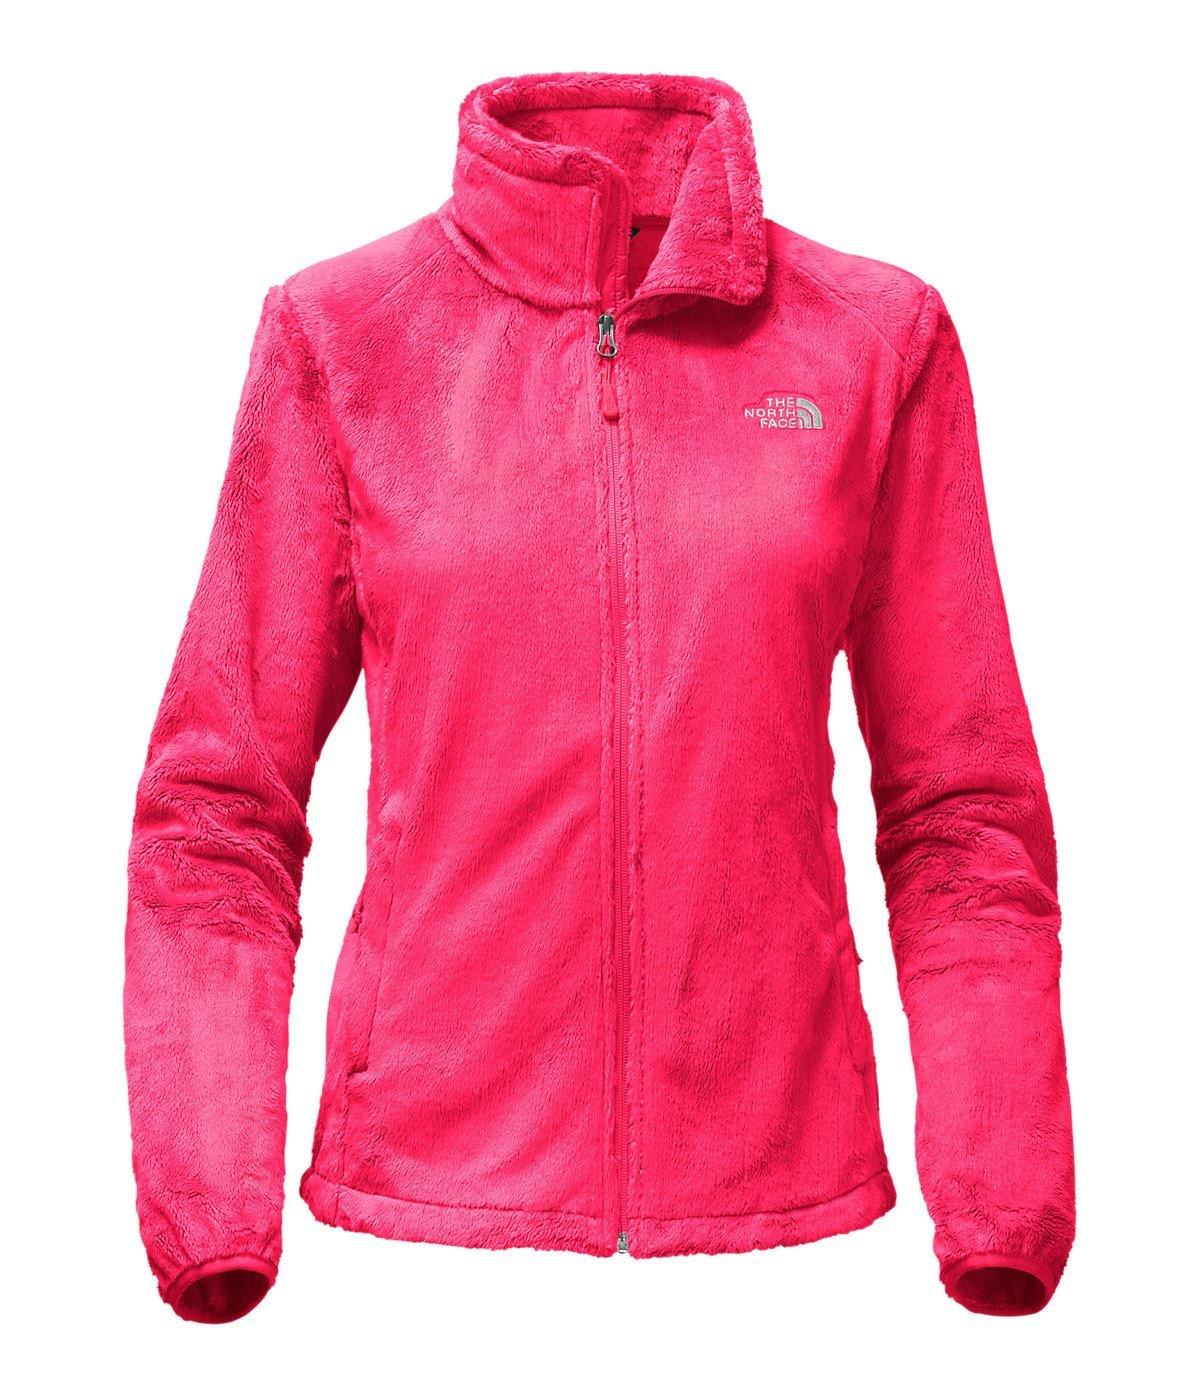 The North Face Women's Osito 2 Jacket Honeysuckle Pink XS